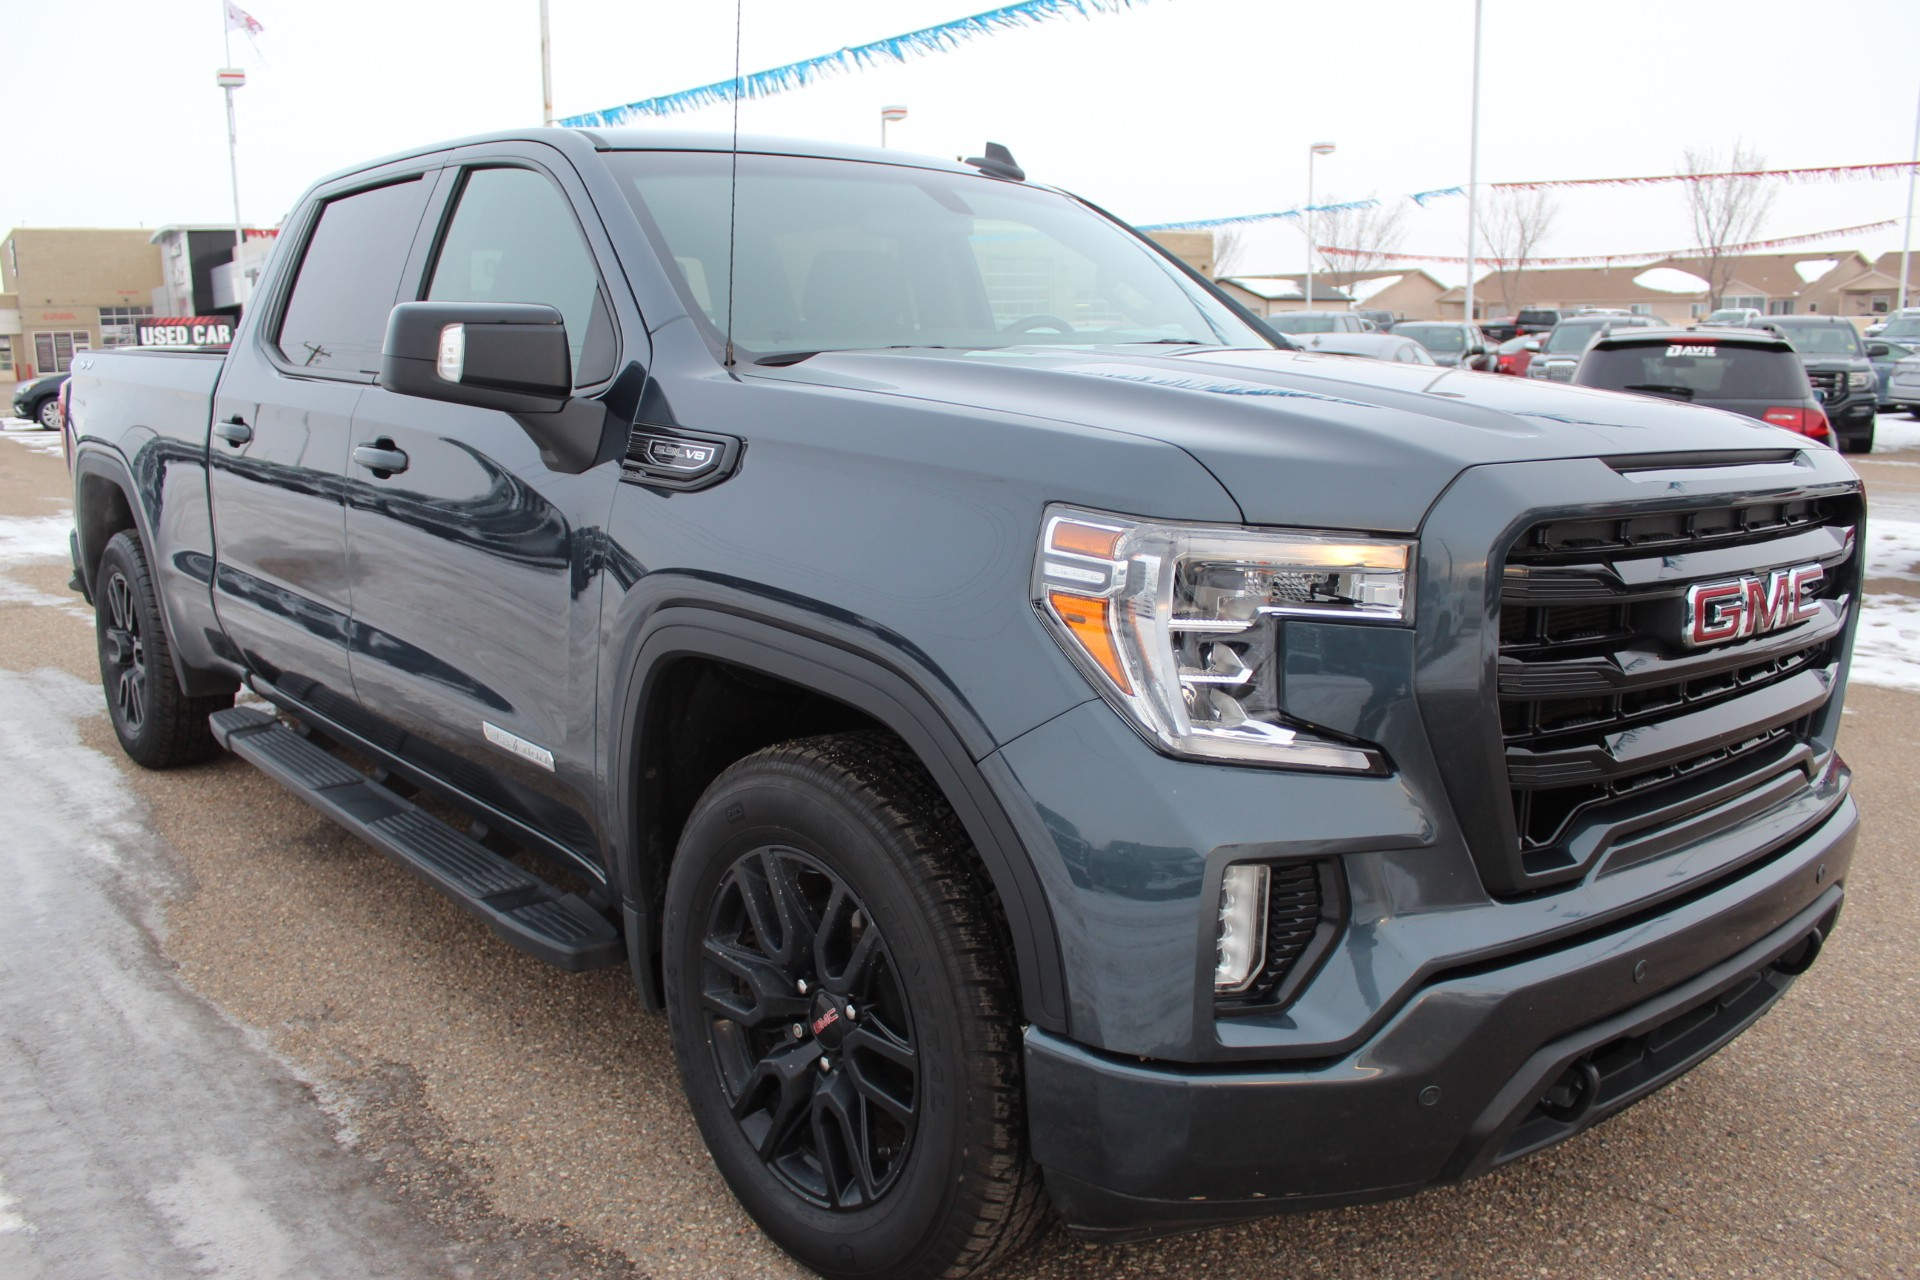 2019 GMC Sierra 1500 Elevation - 67,373km